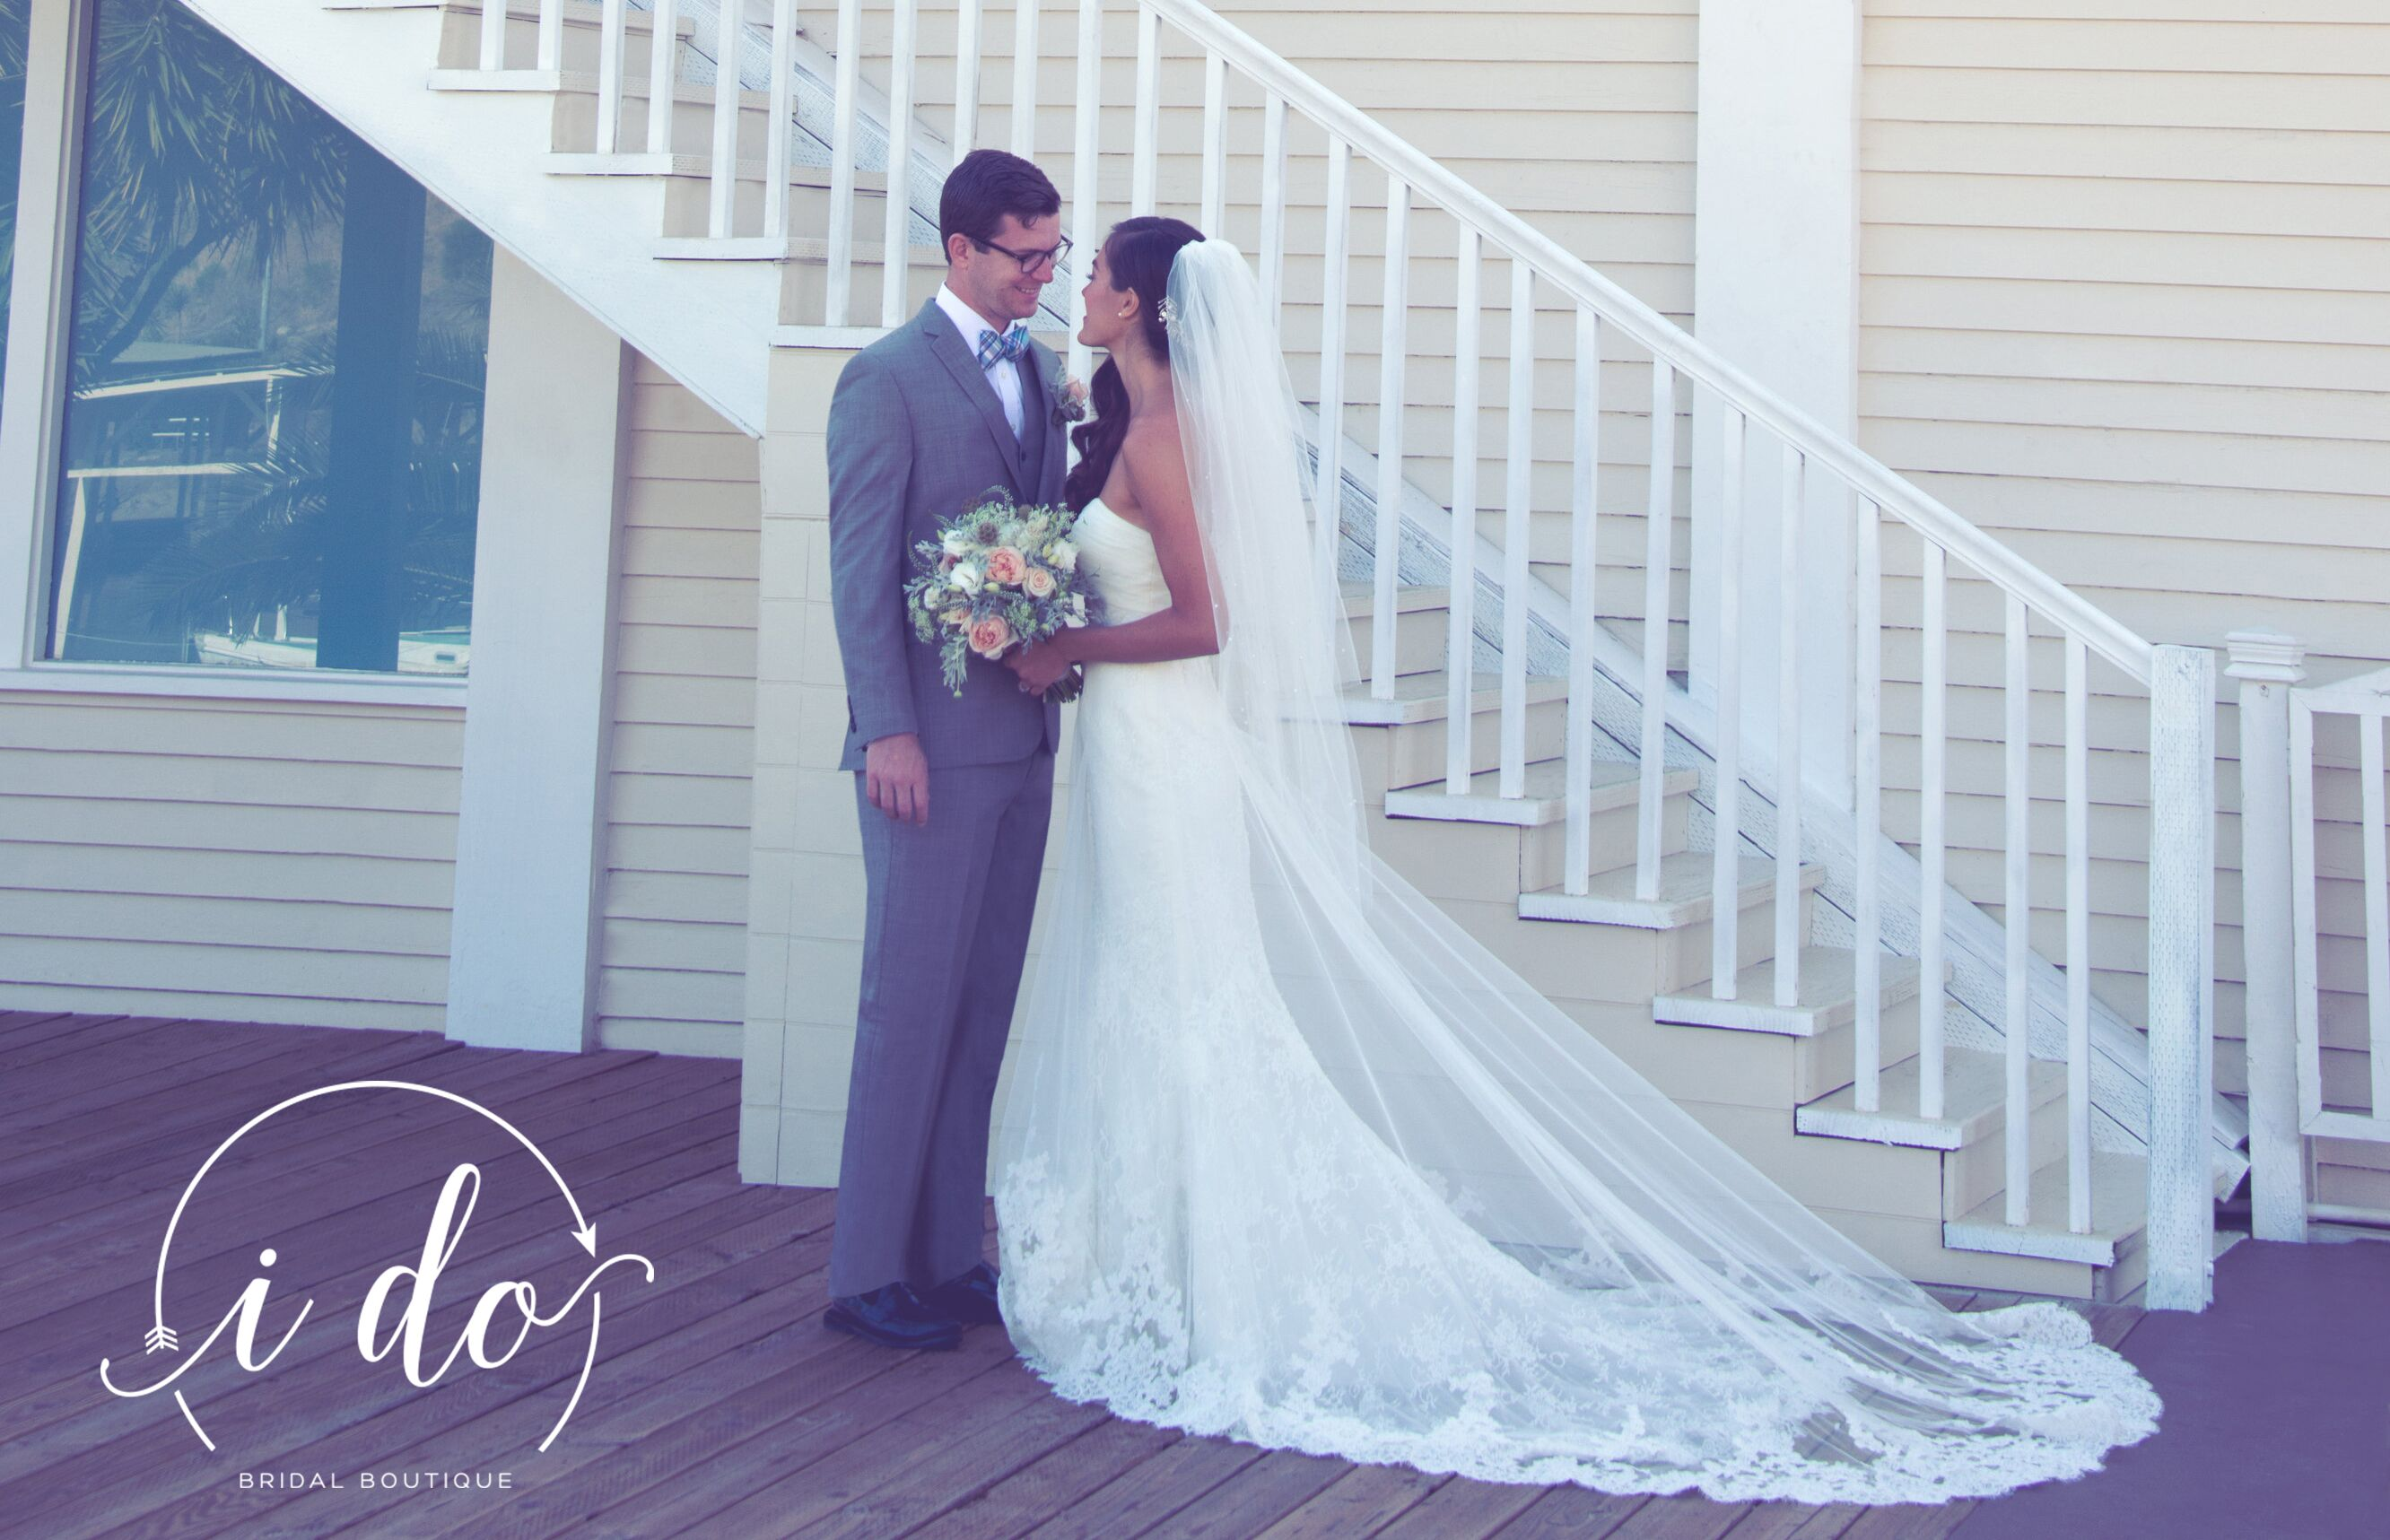 Bridal Salons in San Francisco, CA - The Knot